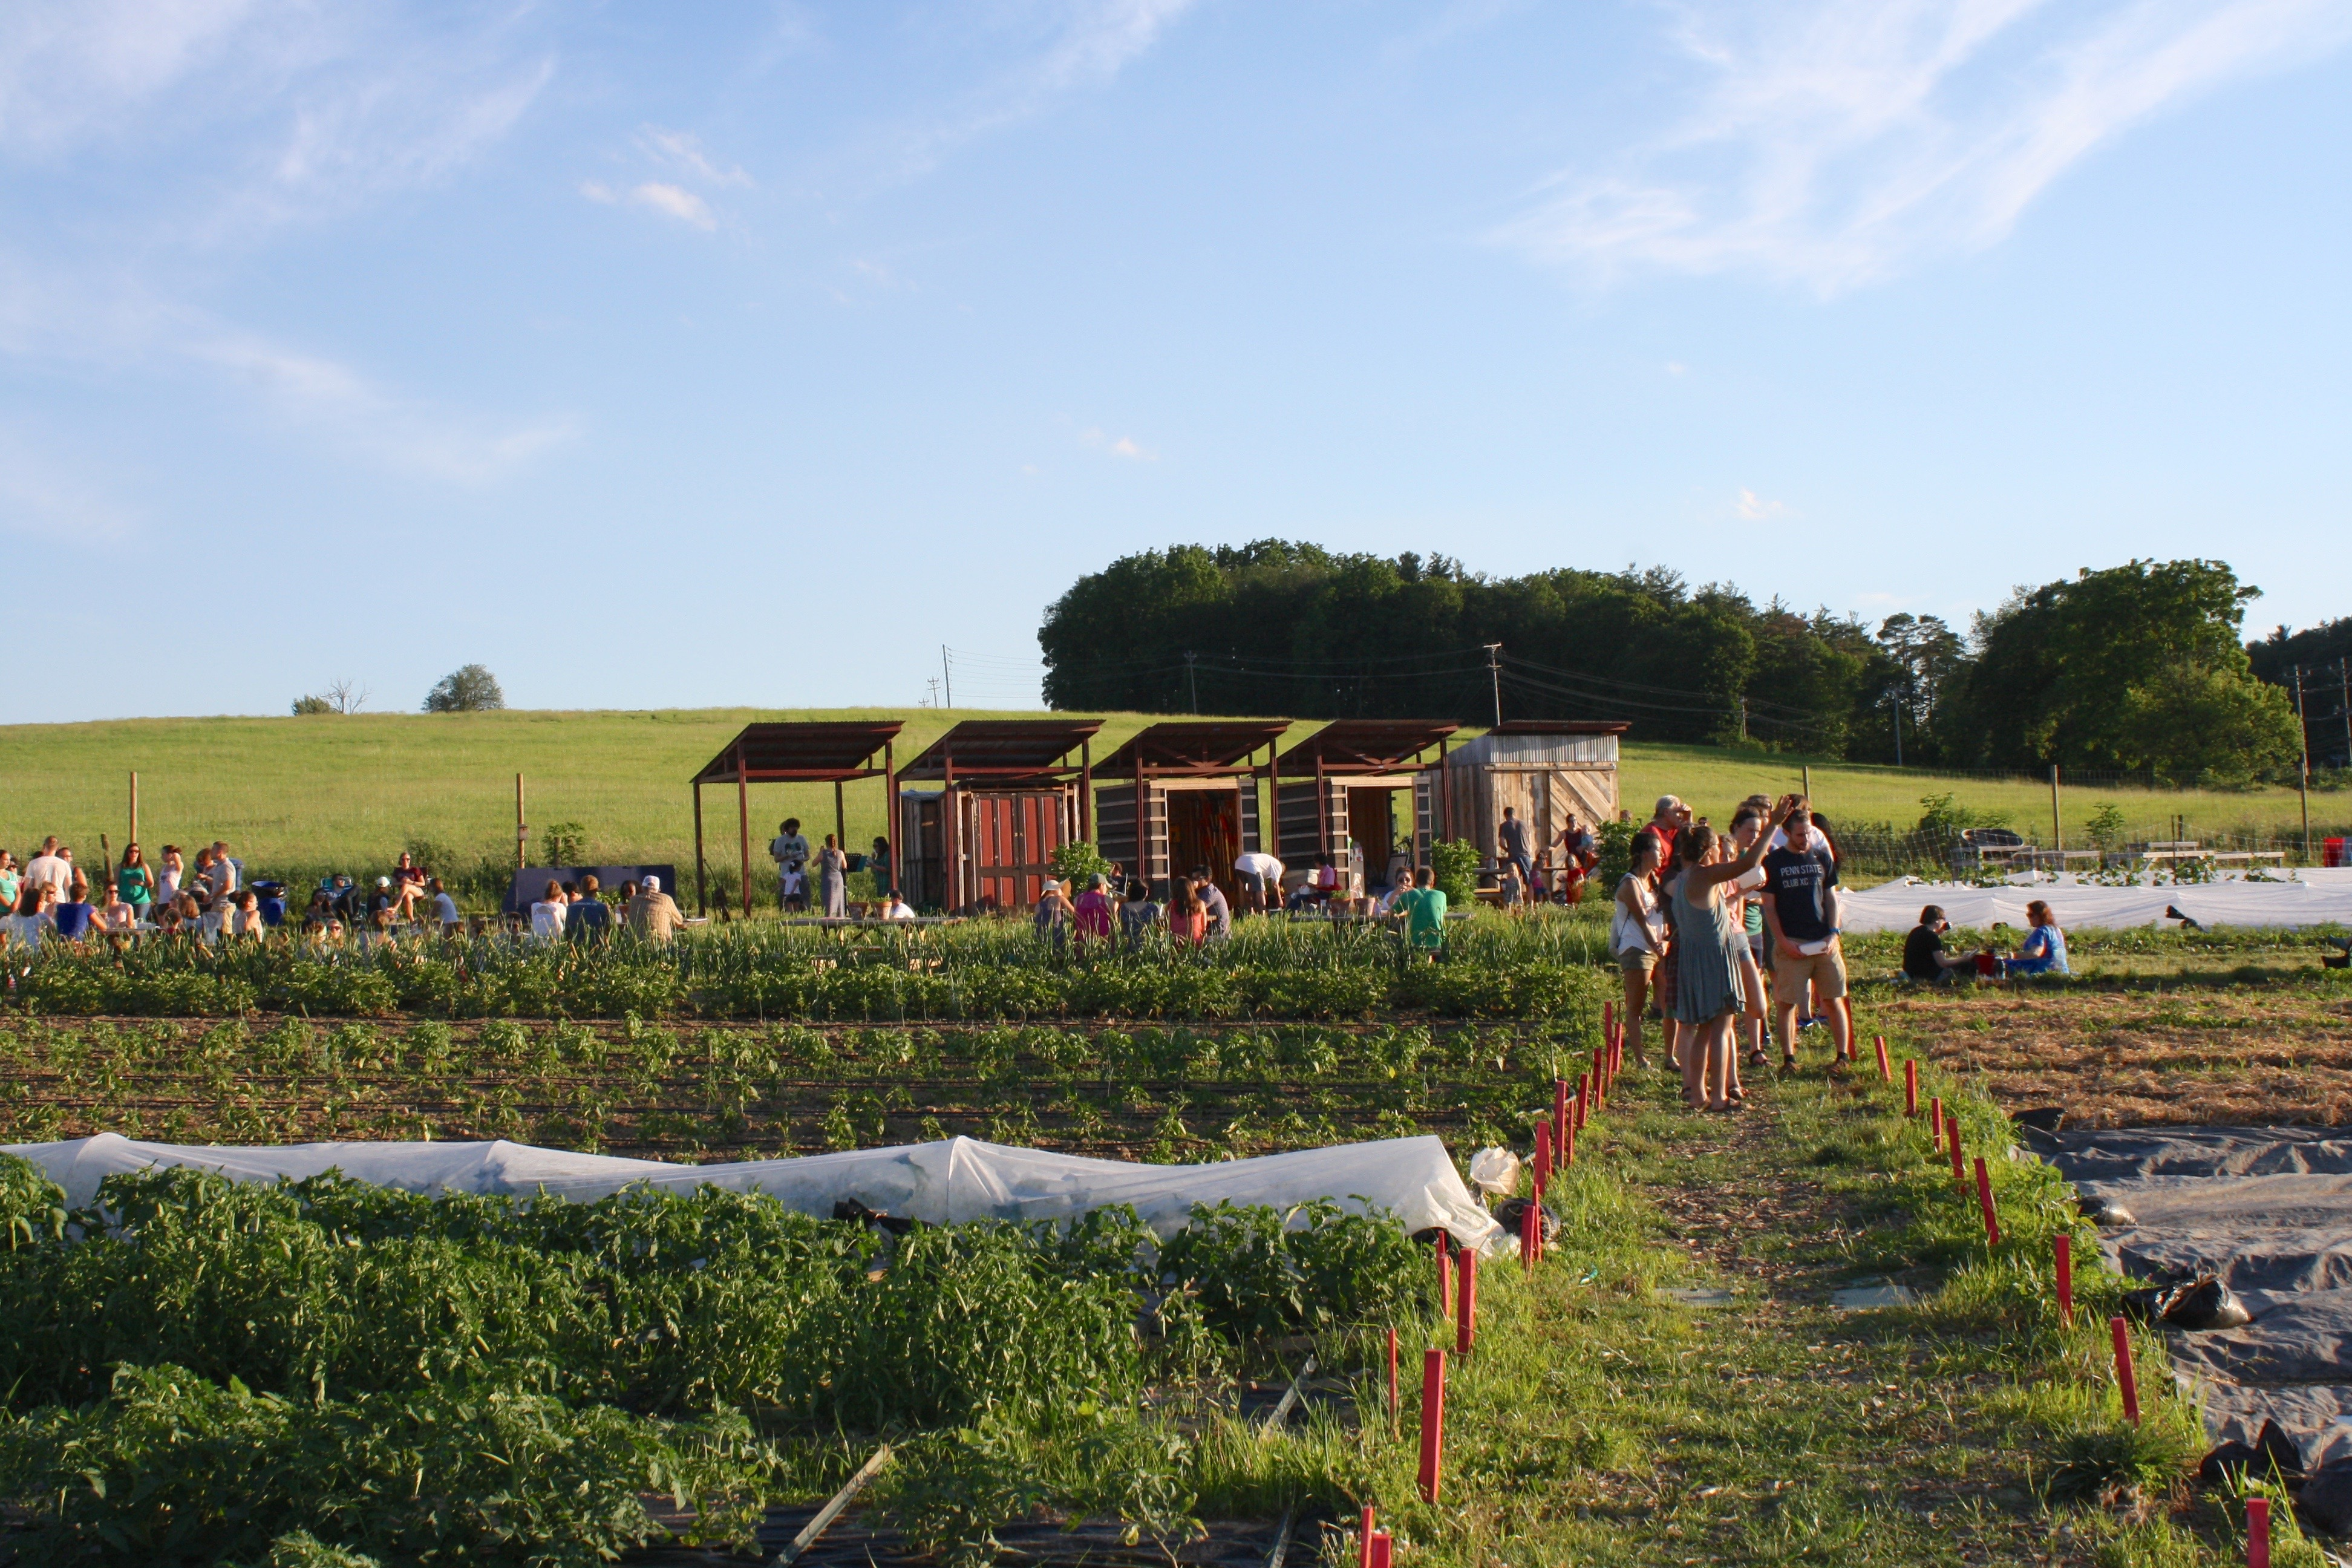 Student Farm at Penn State Growing engagement with our food system